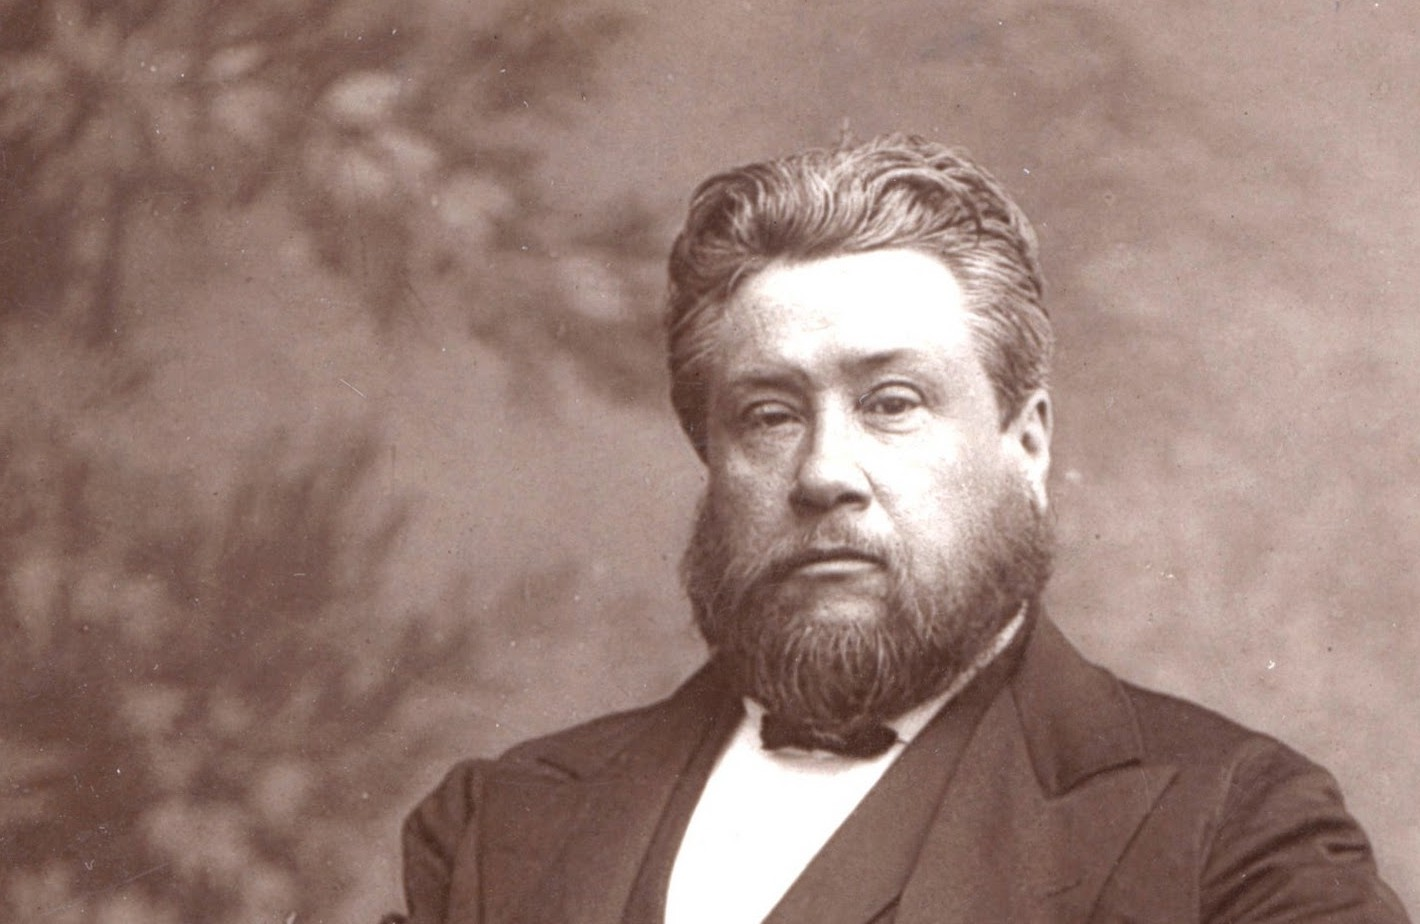 Through the Eyes of Spurgeon Through the Eyes of A Baptist Pastor